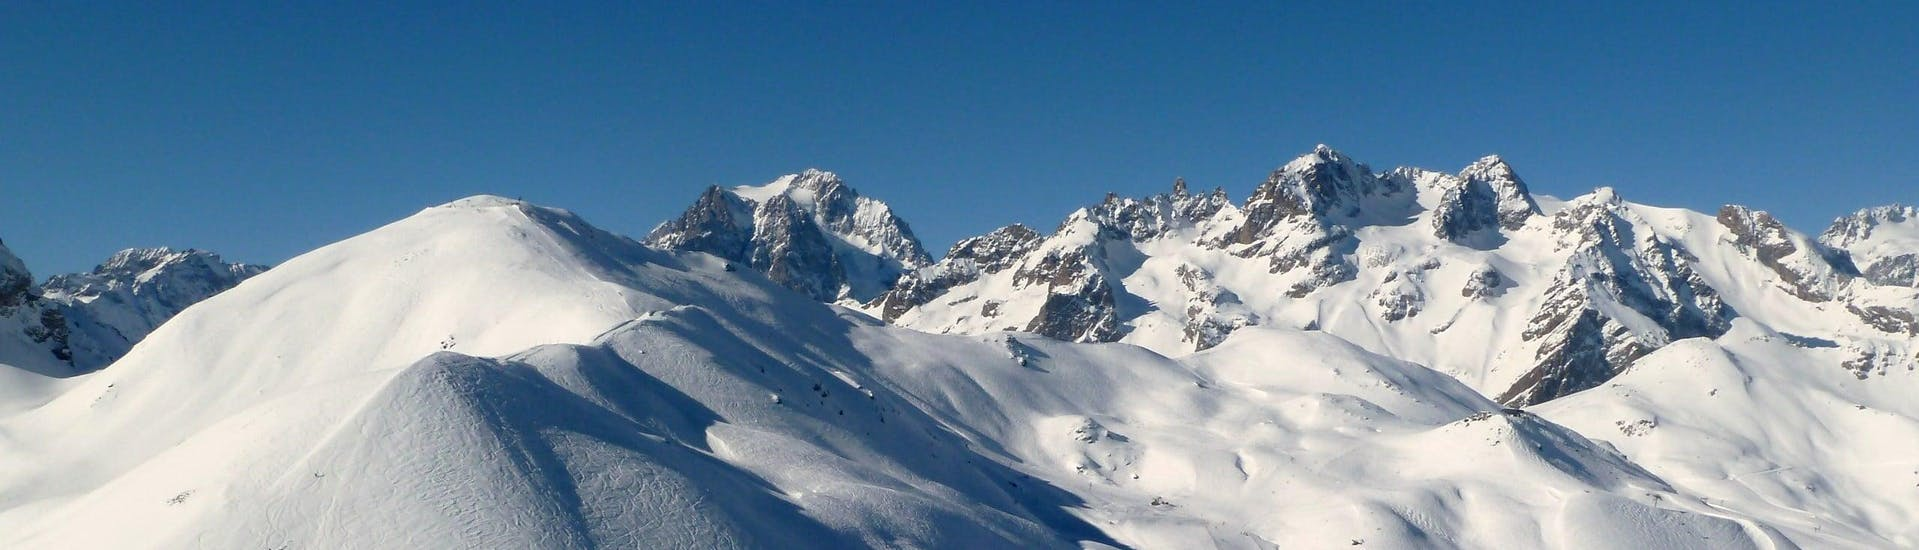 View over the sunny mountain landscape while learning to ski with the ski schools in Serre Chevalier Vallée.